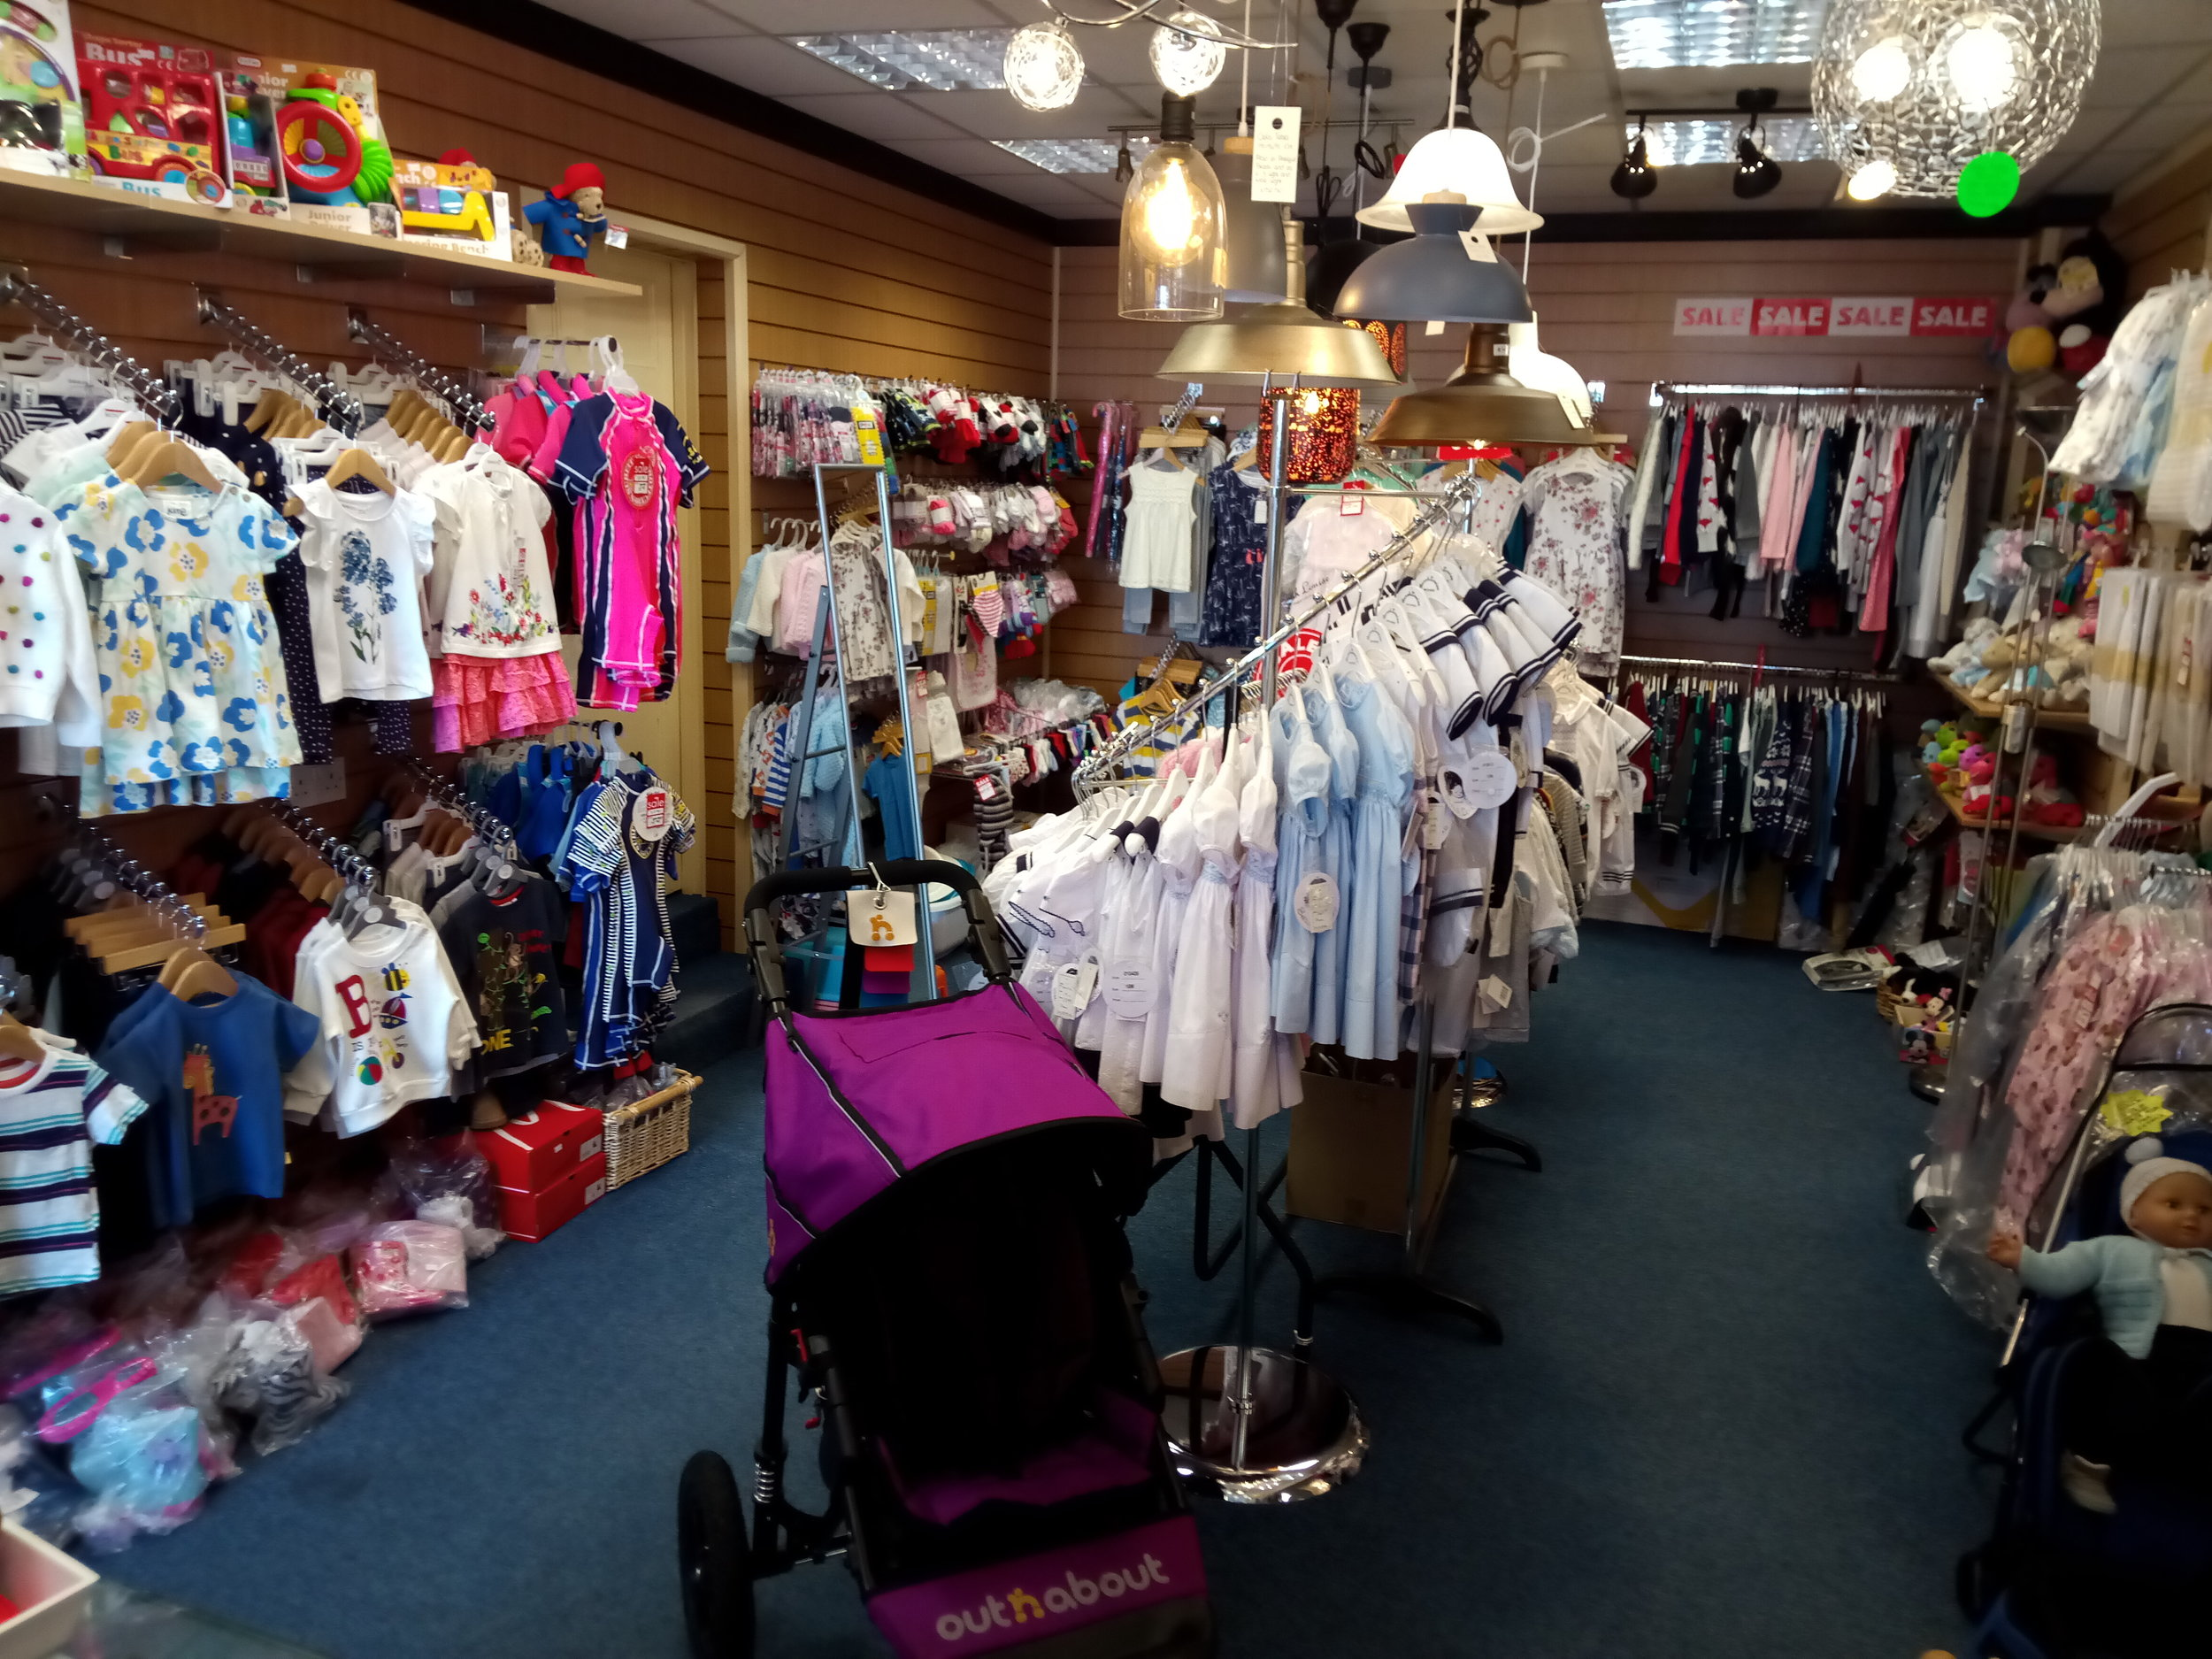 Kiddiewinks   Kiddiewinks sells children's clothing from newborn to 8 years, with prices ranging from £4.00 for basic T-shirts and leggings and £5.00 dresses. We also stock organic clothing from Kite as well as the essentials like socks and underwear. We hire out all terrain pushchairs, backpacks, travel cots and highchairs.  11 St Johns Street, Keswick, CA12 5AP  017687 71358